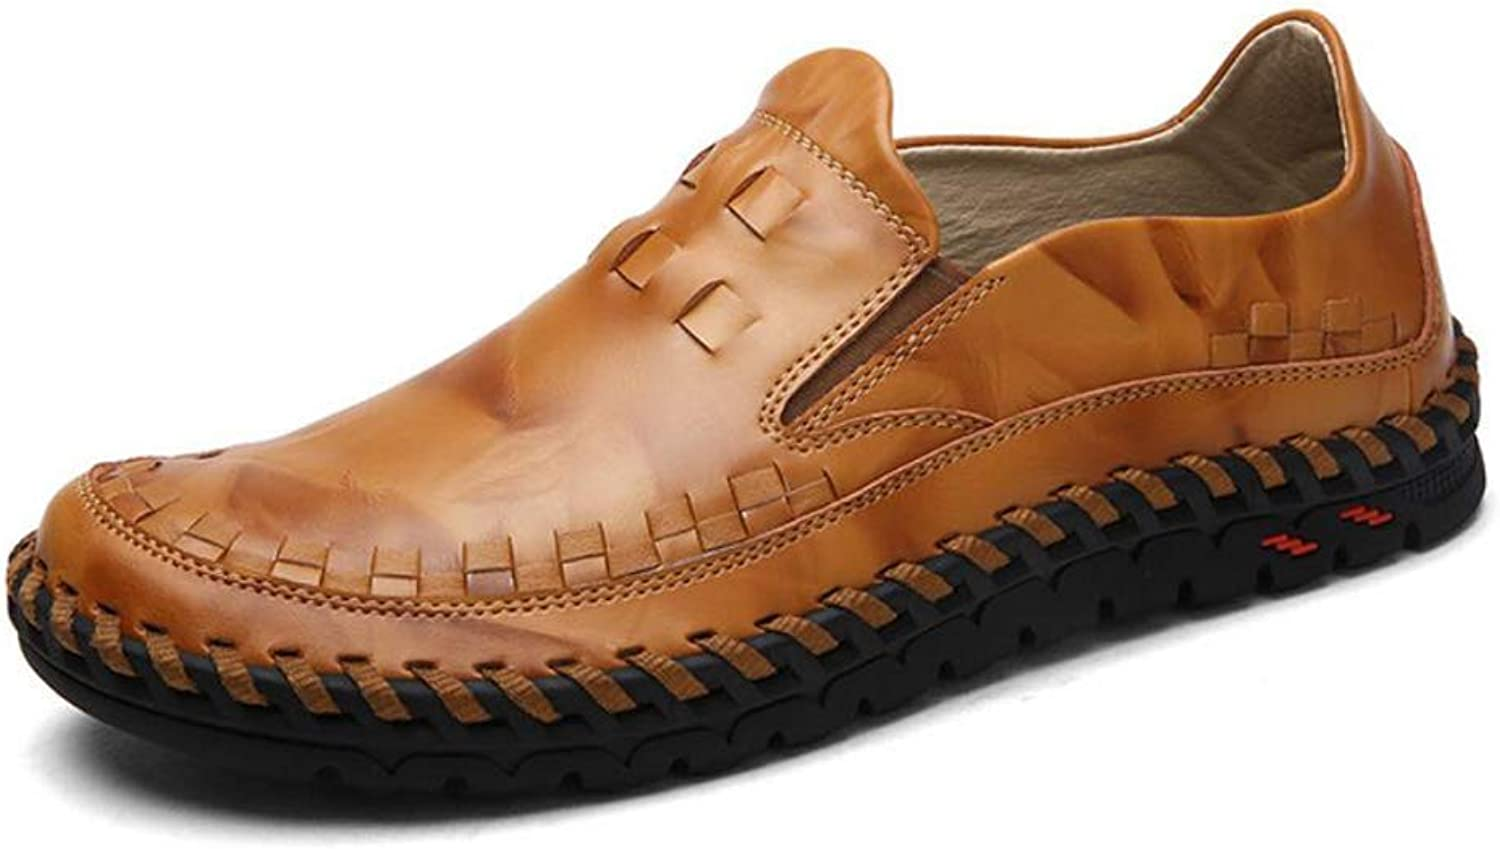 Men's Dress Loafers Leather Spring Fall Comfort Loafers & Slip-Ons Driving shoes Lazy shoes Walking shoes British Style Black Brown (color   Brown, Size   42)